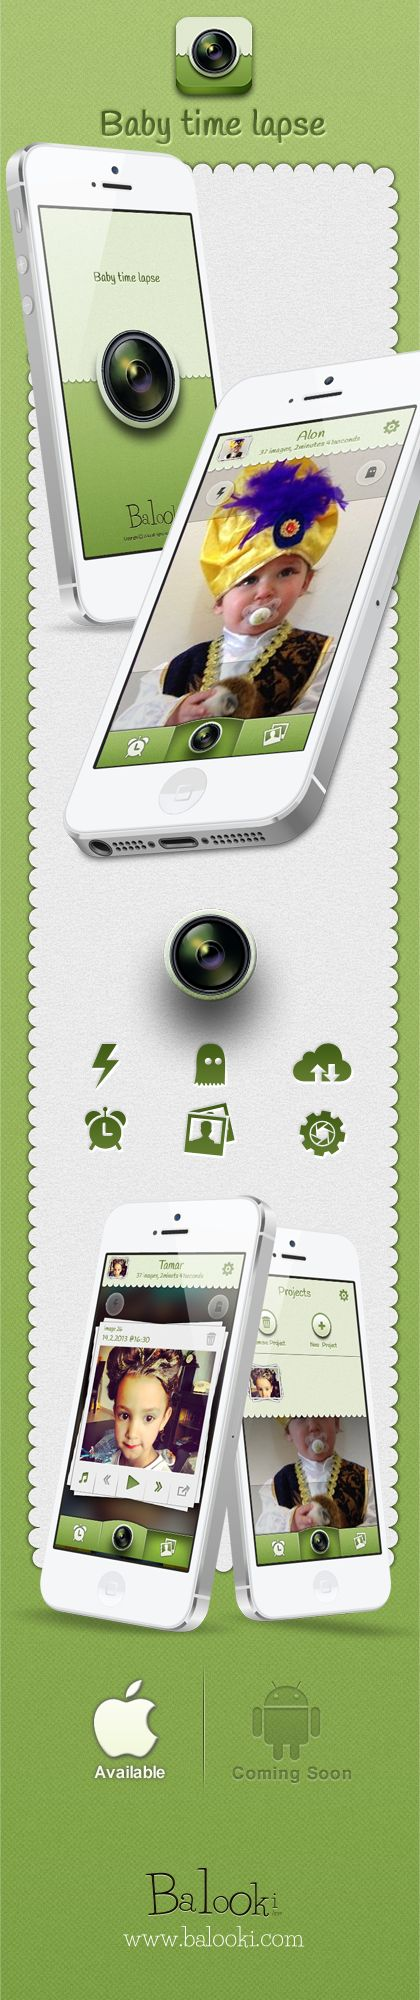 UI for a New time lapse mobile app . #baby #camera #UI #green #mobileapp